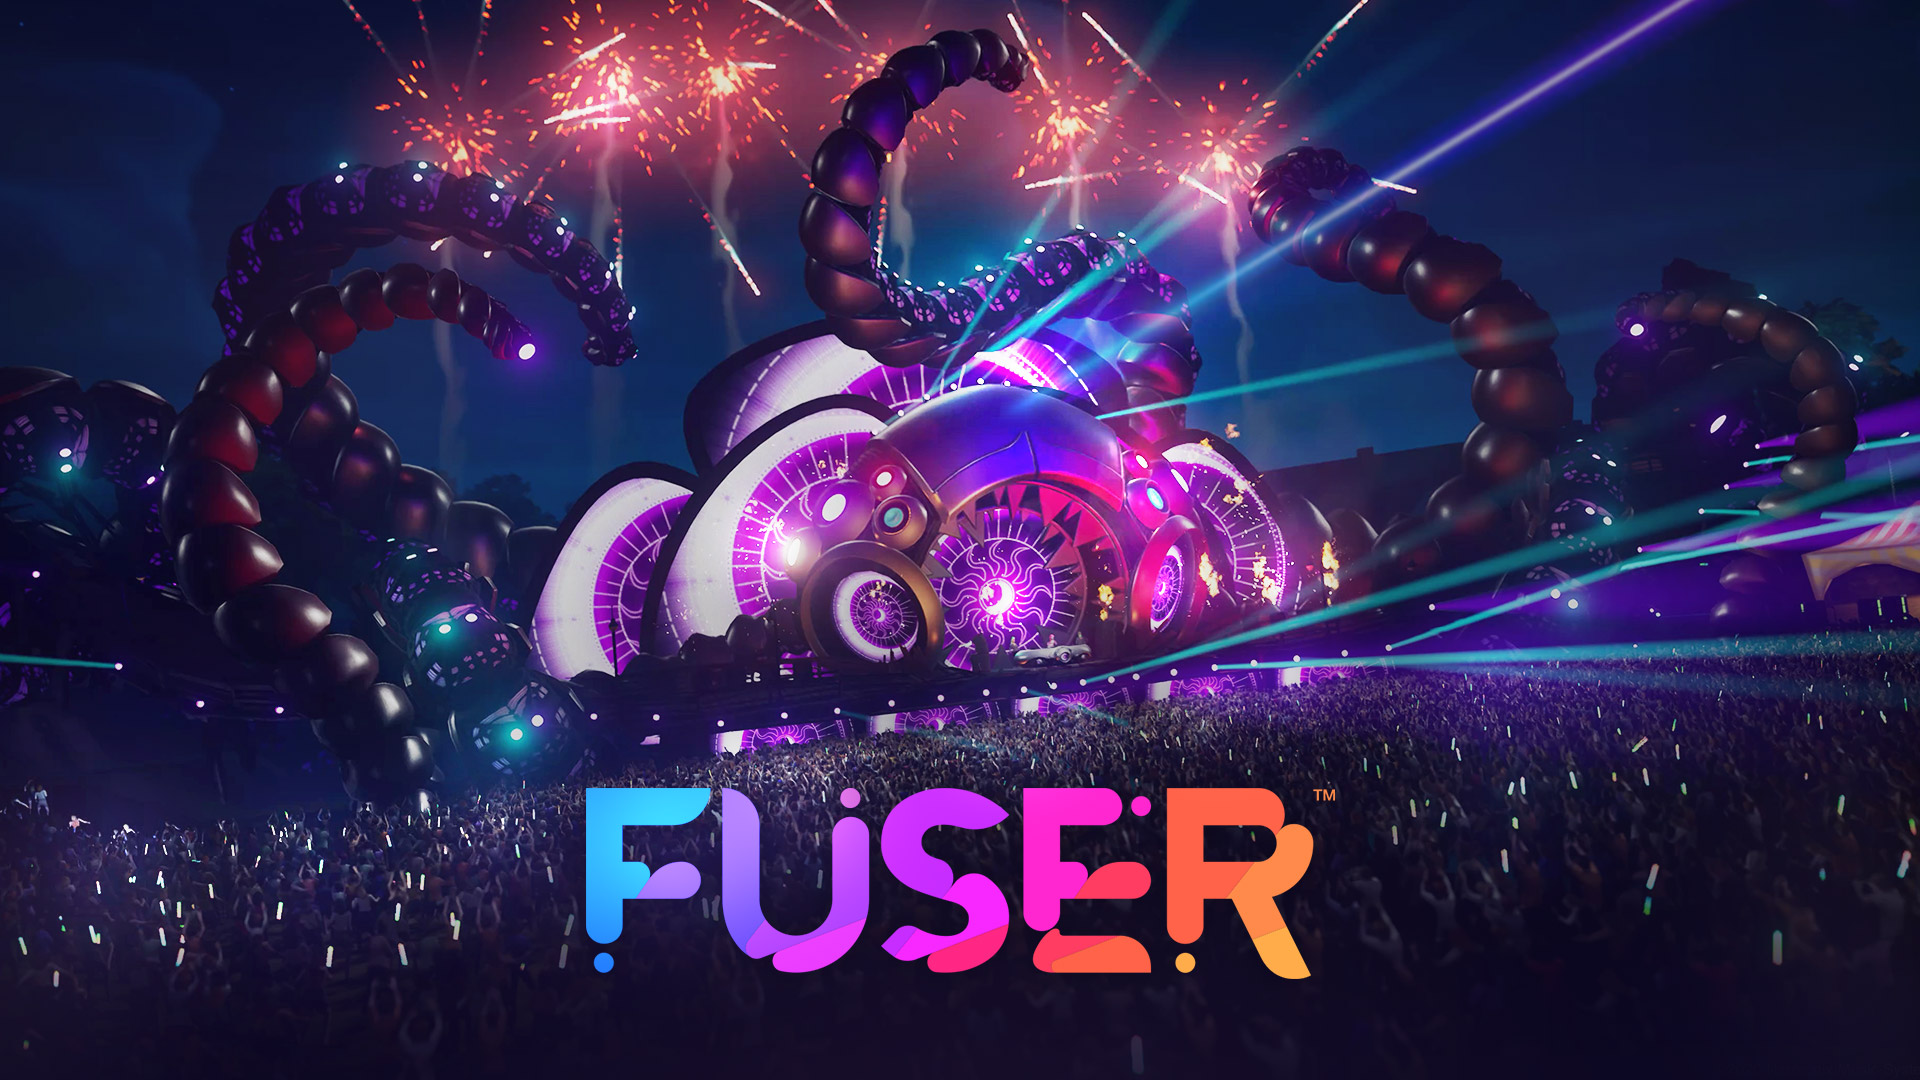 Welcome to FUSER—your crowd awaits!